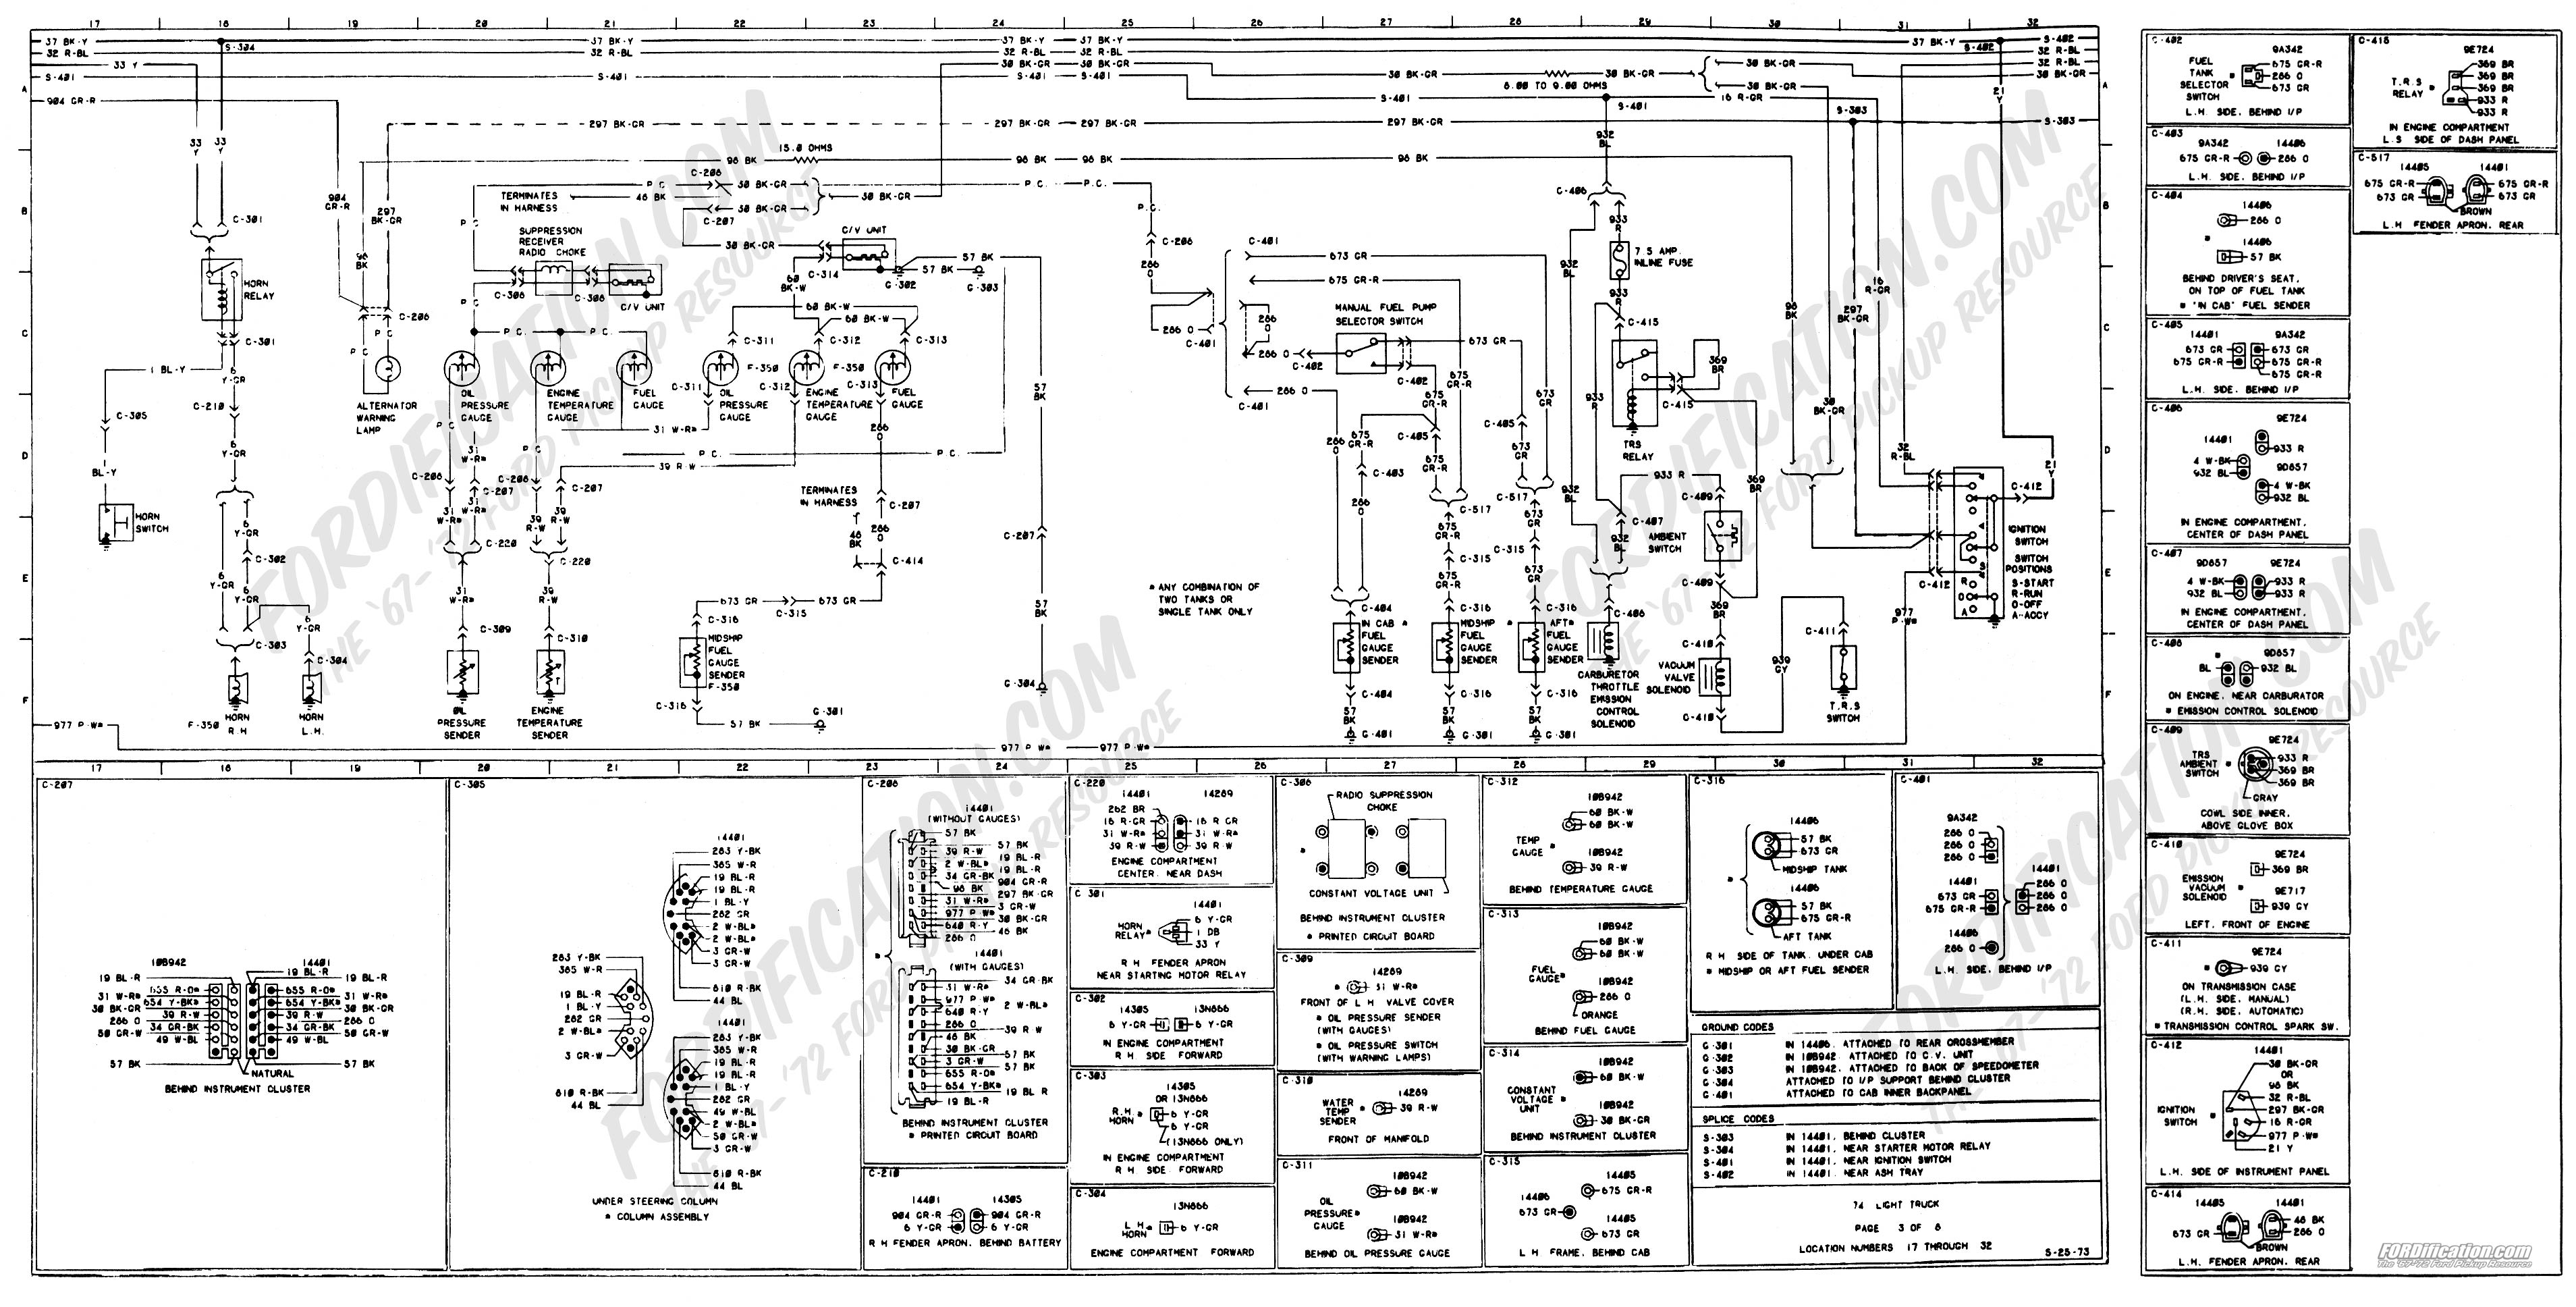 wiring_74master_3of8 1973 1979 ford truck wiring diagrams & schematics fordification net OEM Wiring Harness Connectors at bayanpartner.co